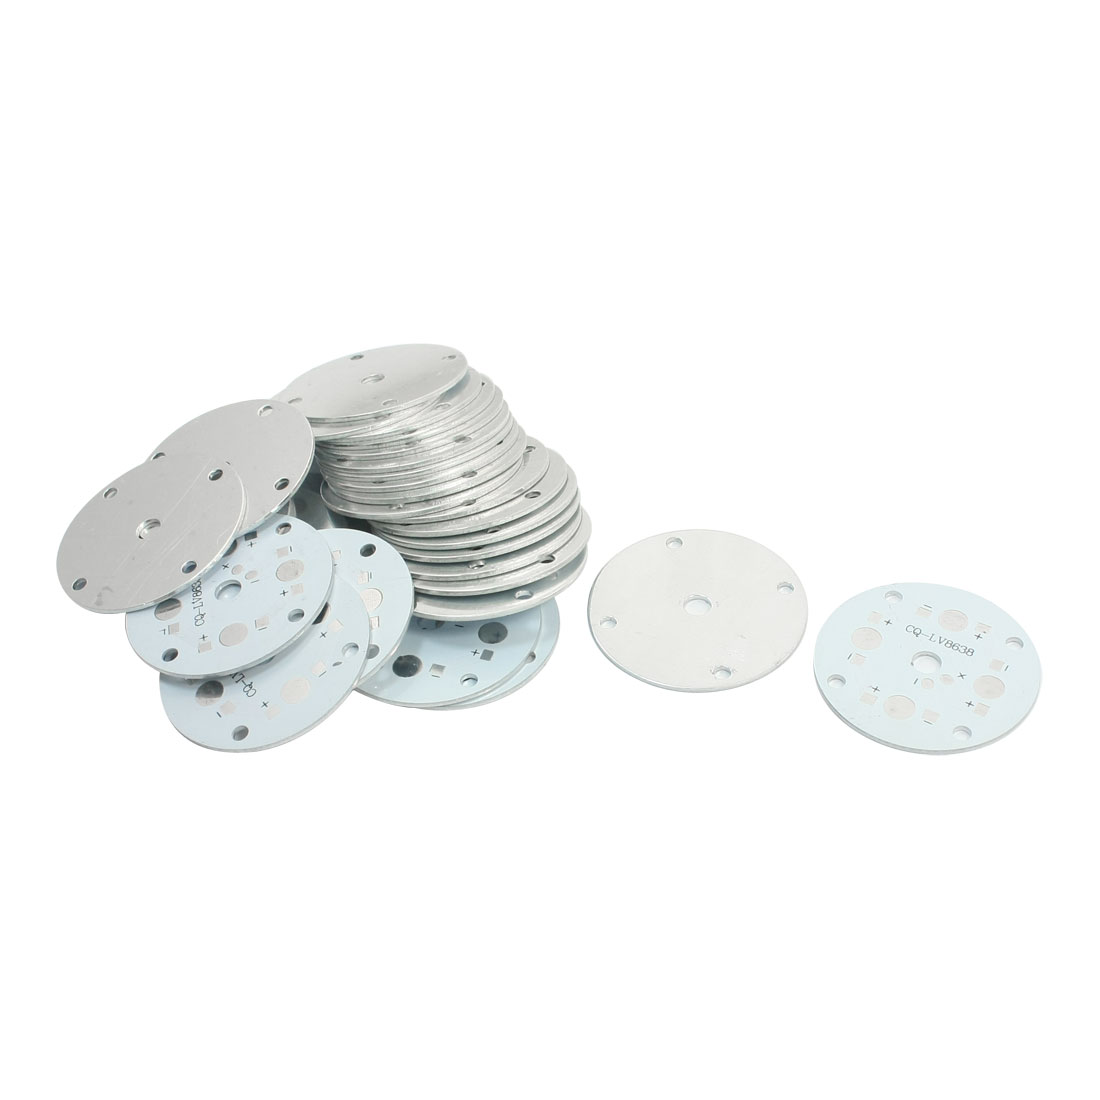 30pcs 4.8cm Round Aluminum PCB Circuit Board DIY for 1W/3W High Power 4LED Bulb in Series